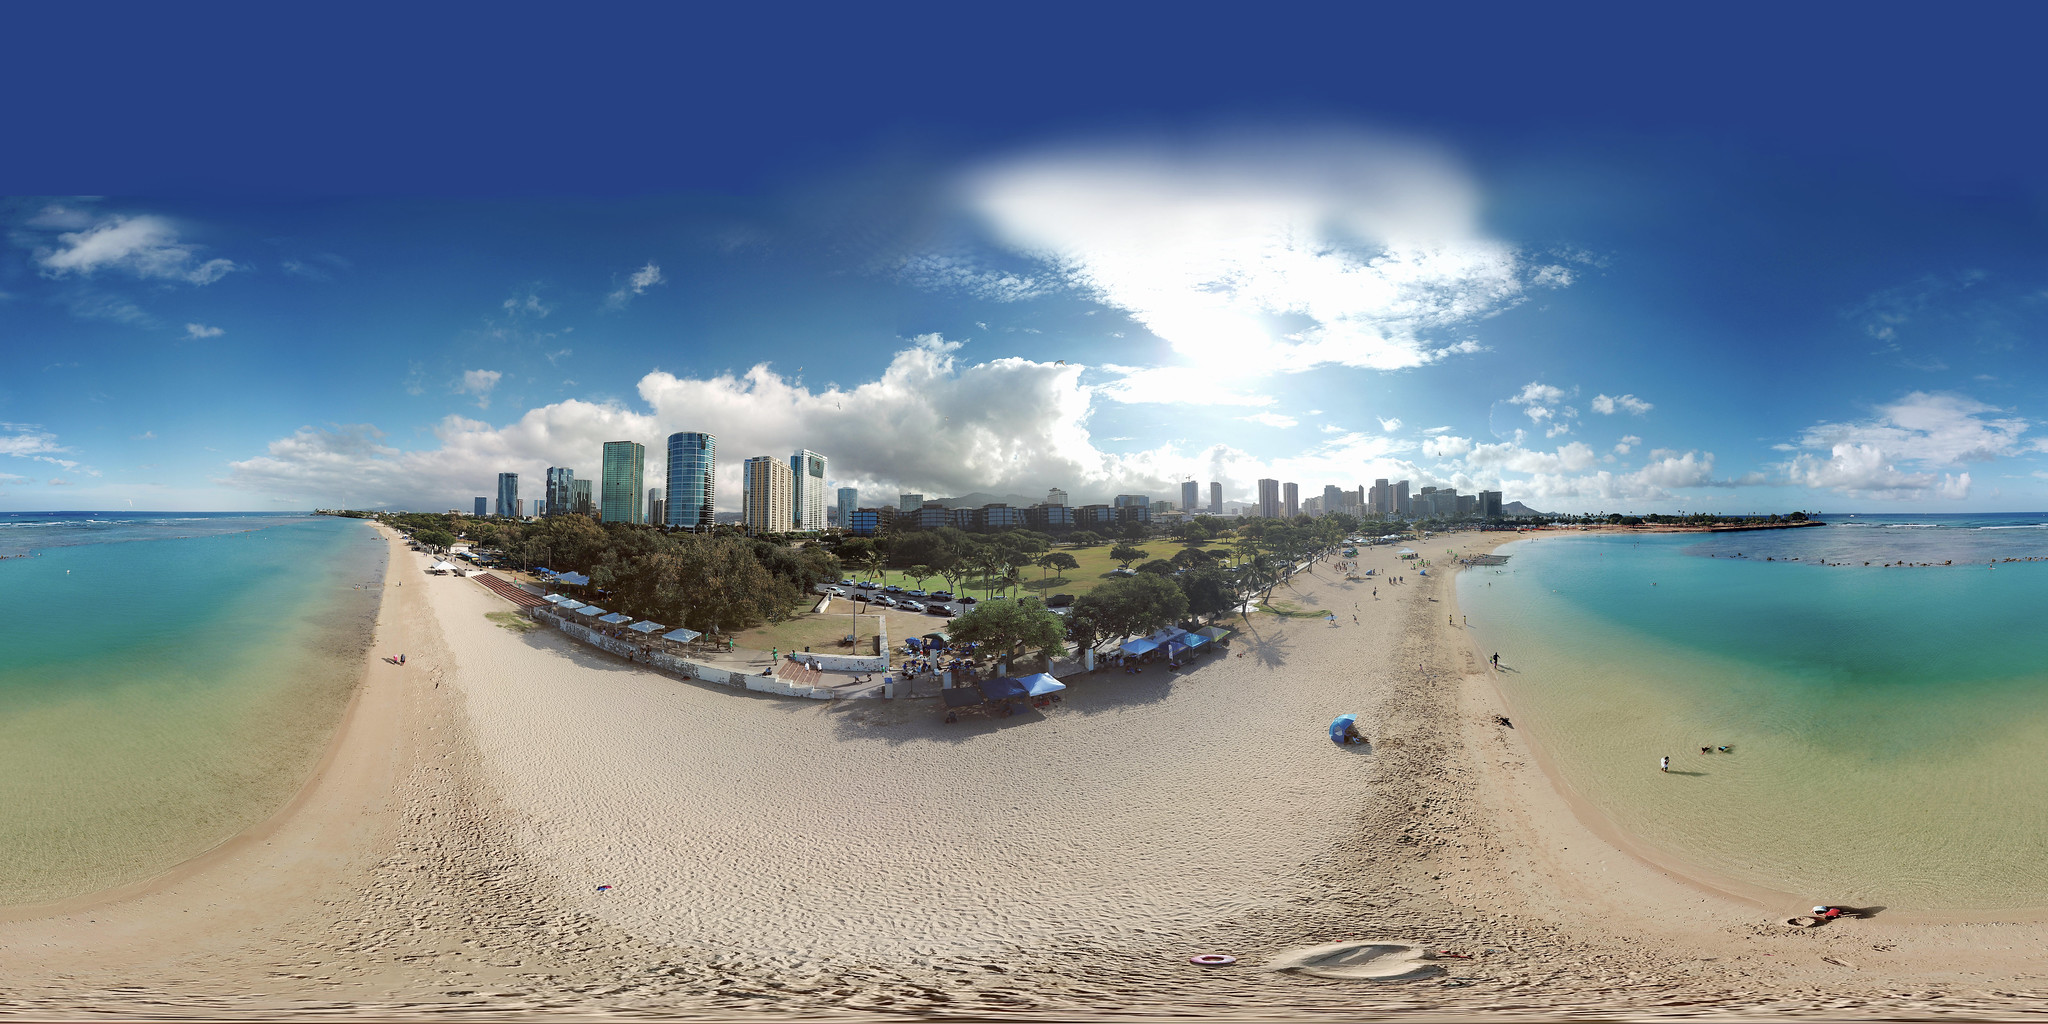 The Dragonboat Festival 2018 at Ala Moana Beach in Honolulu from 50 feet - an aerial 360° Equirectangular VR